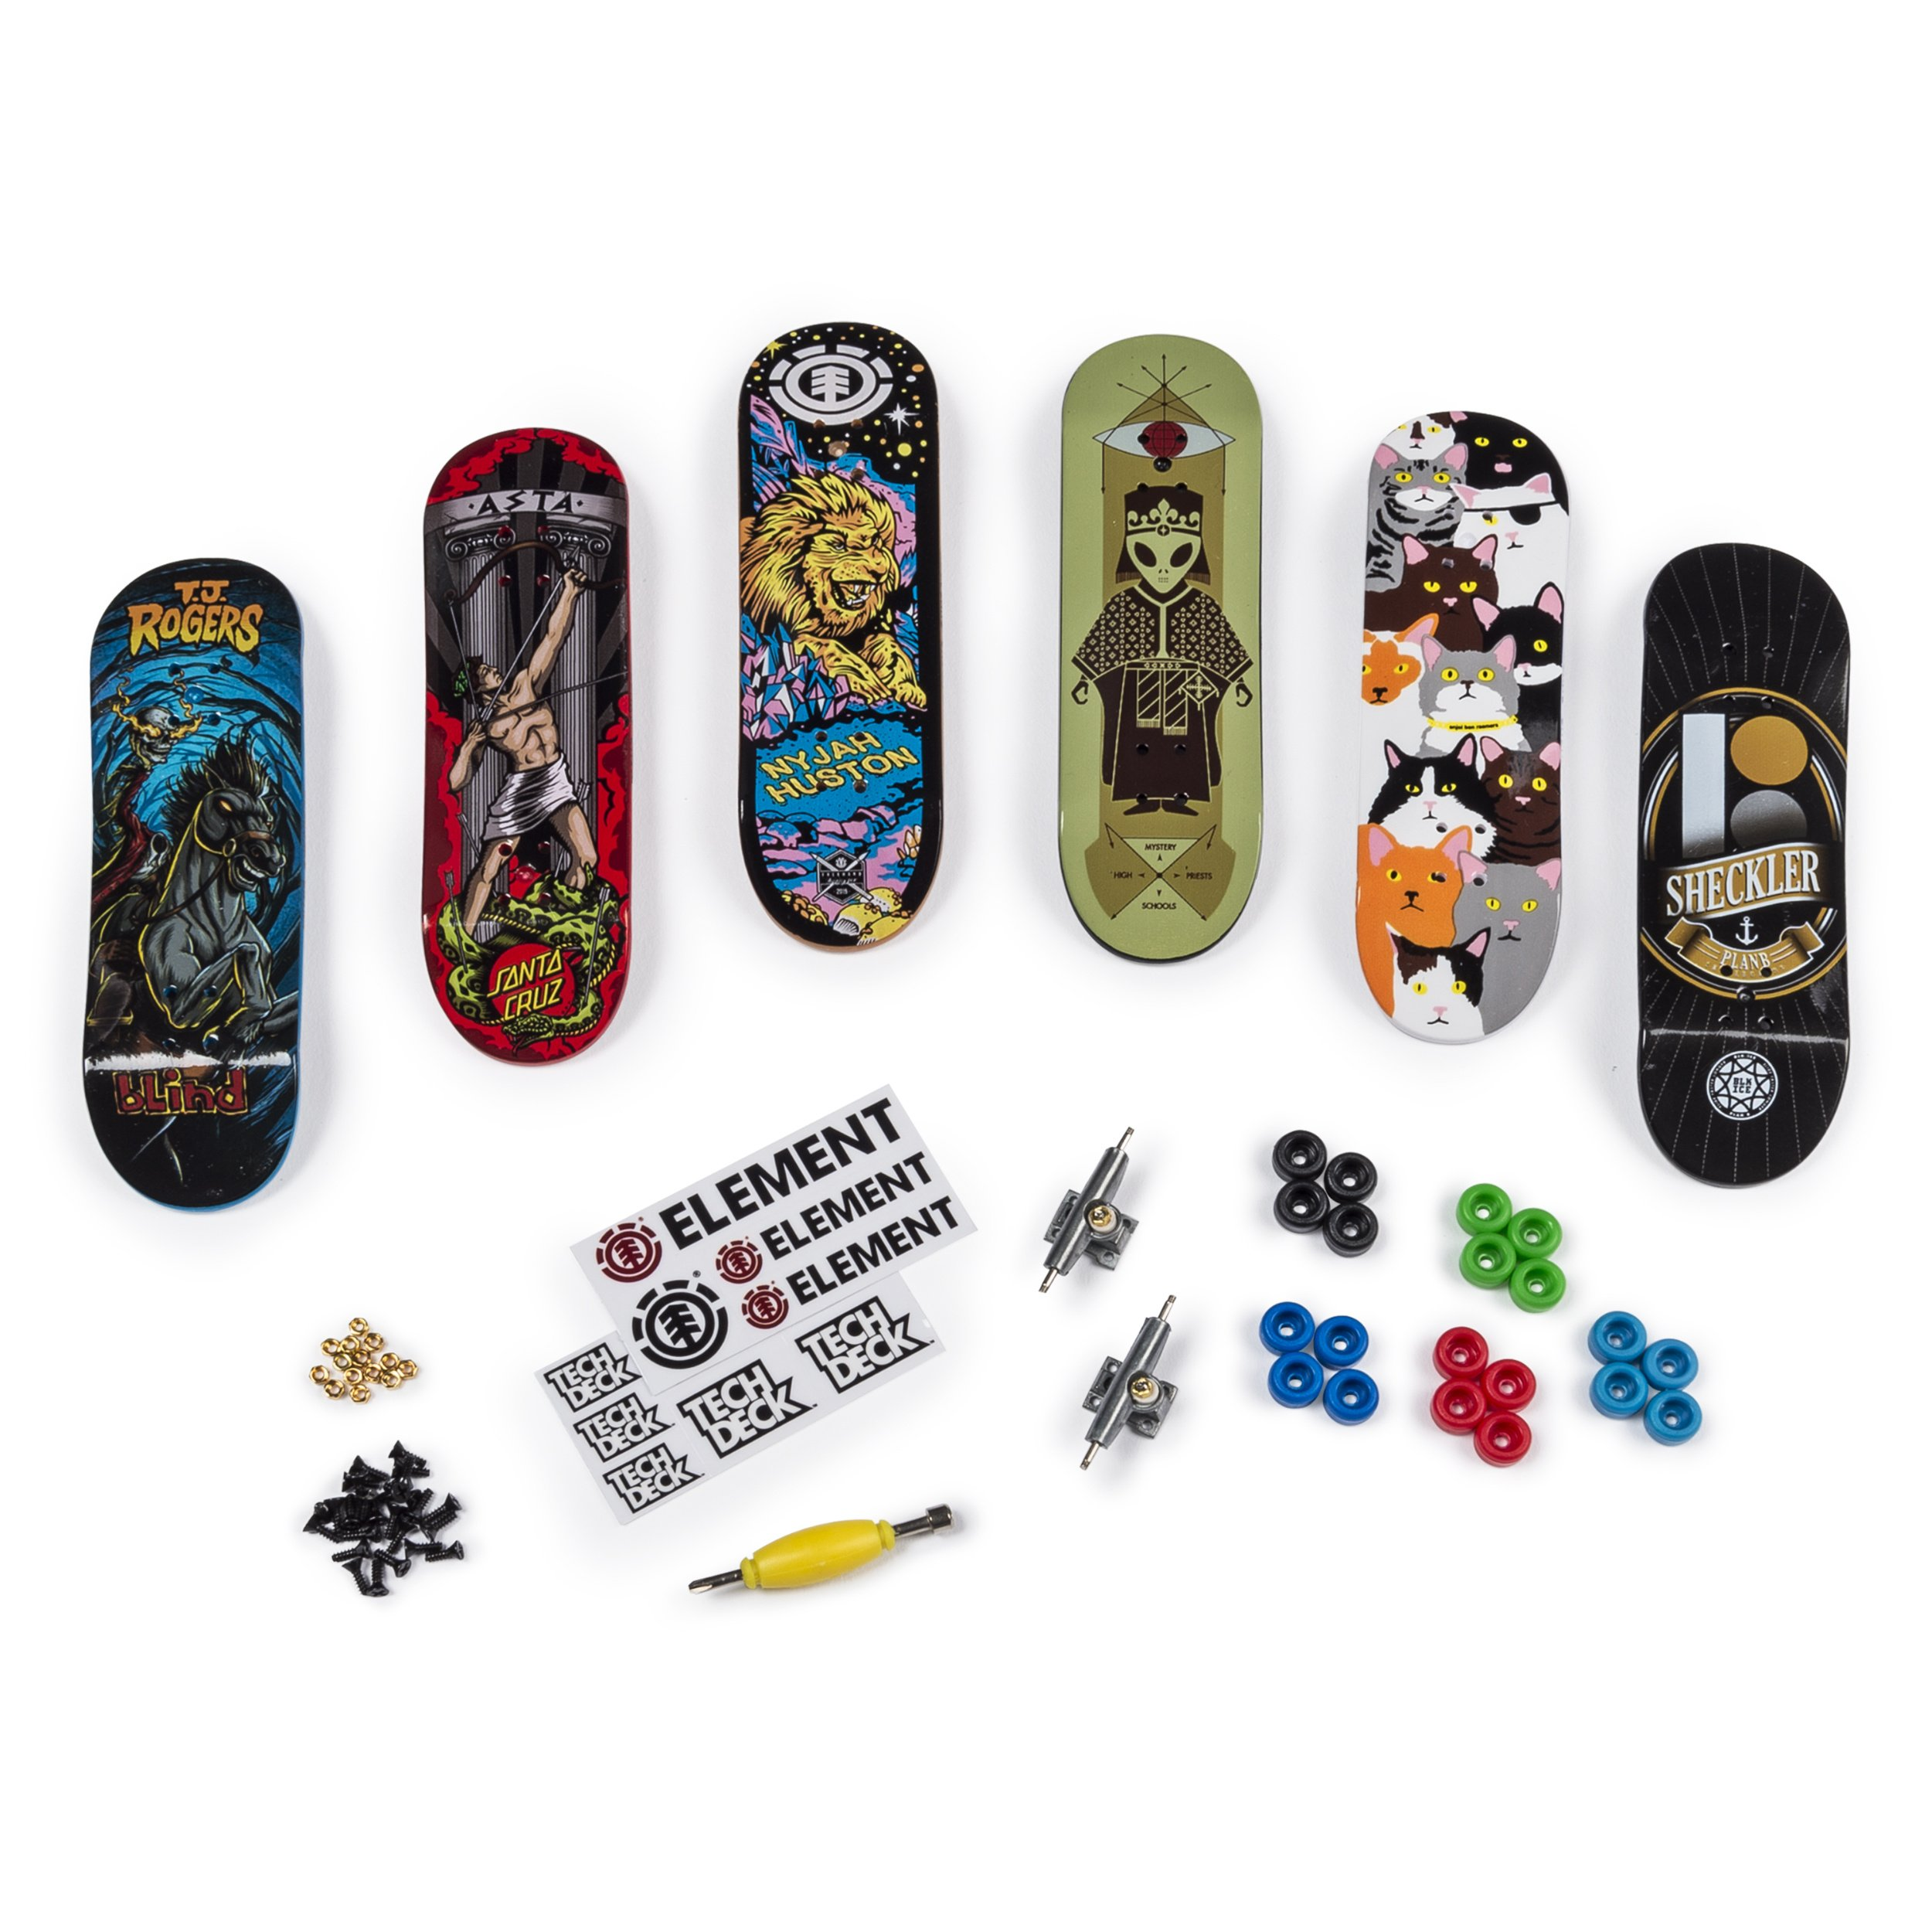 Tech Deck Sk8shop Bonus Pack (styles vary) by Tech Deck (Image #2)